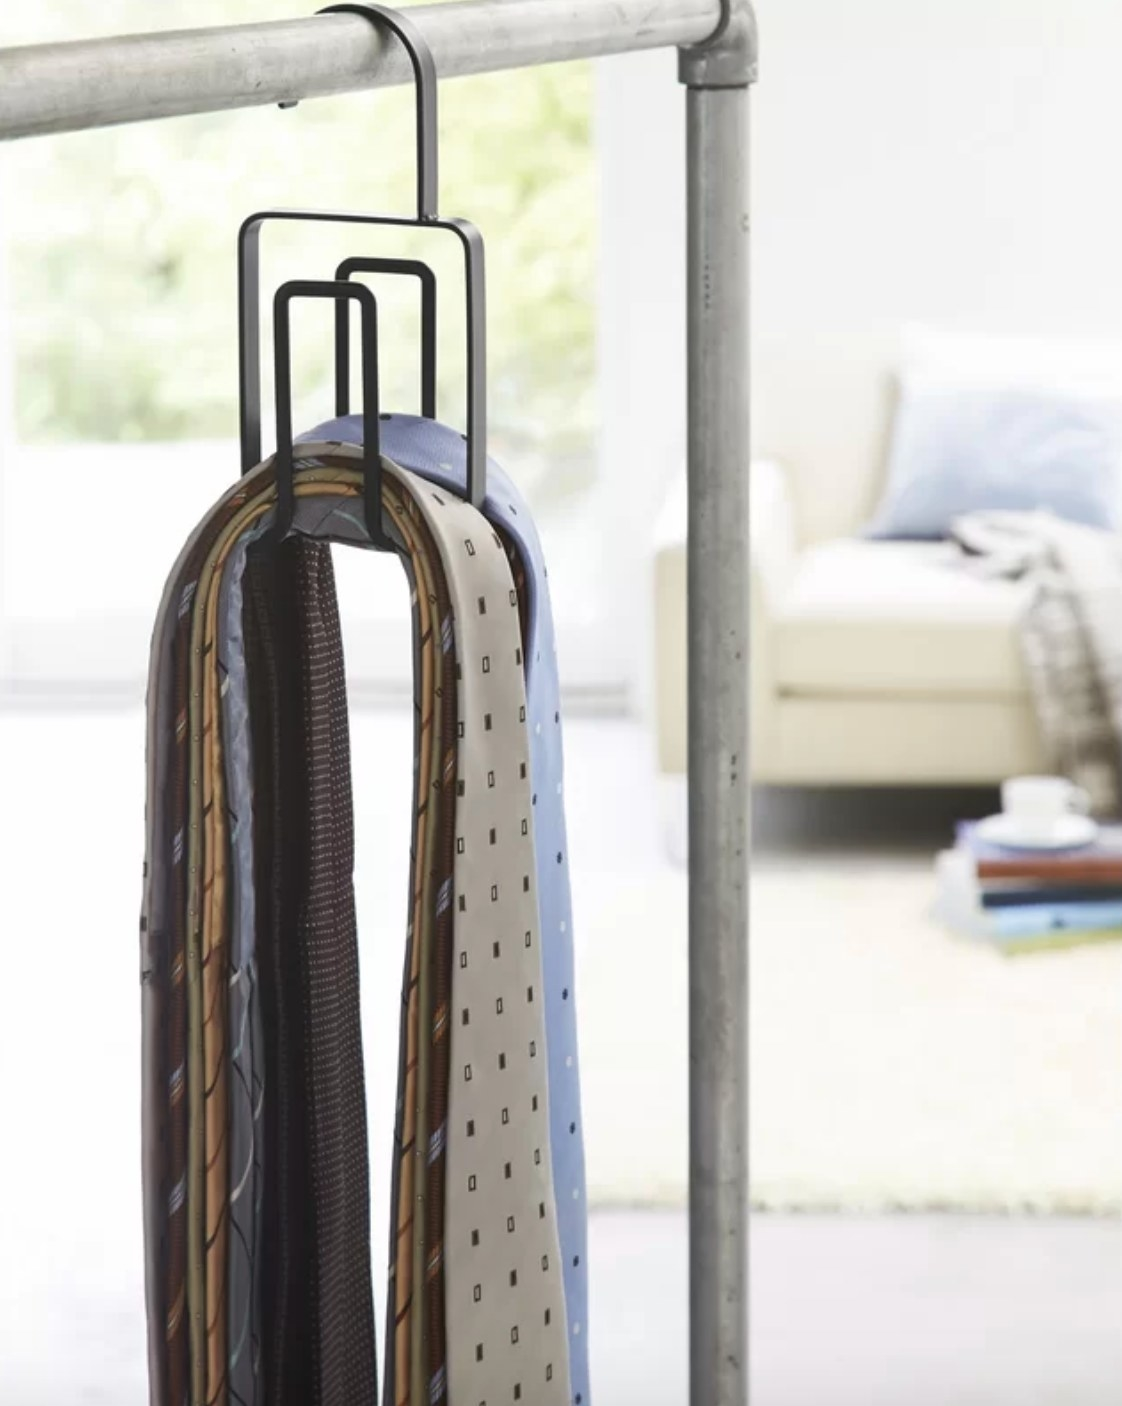 The two-tier tie hanging organizer